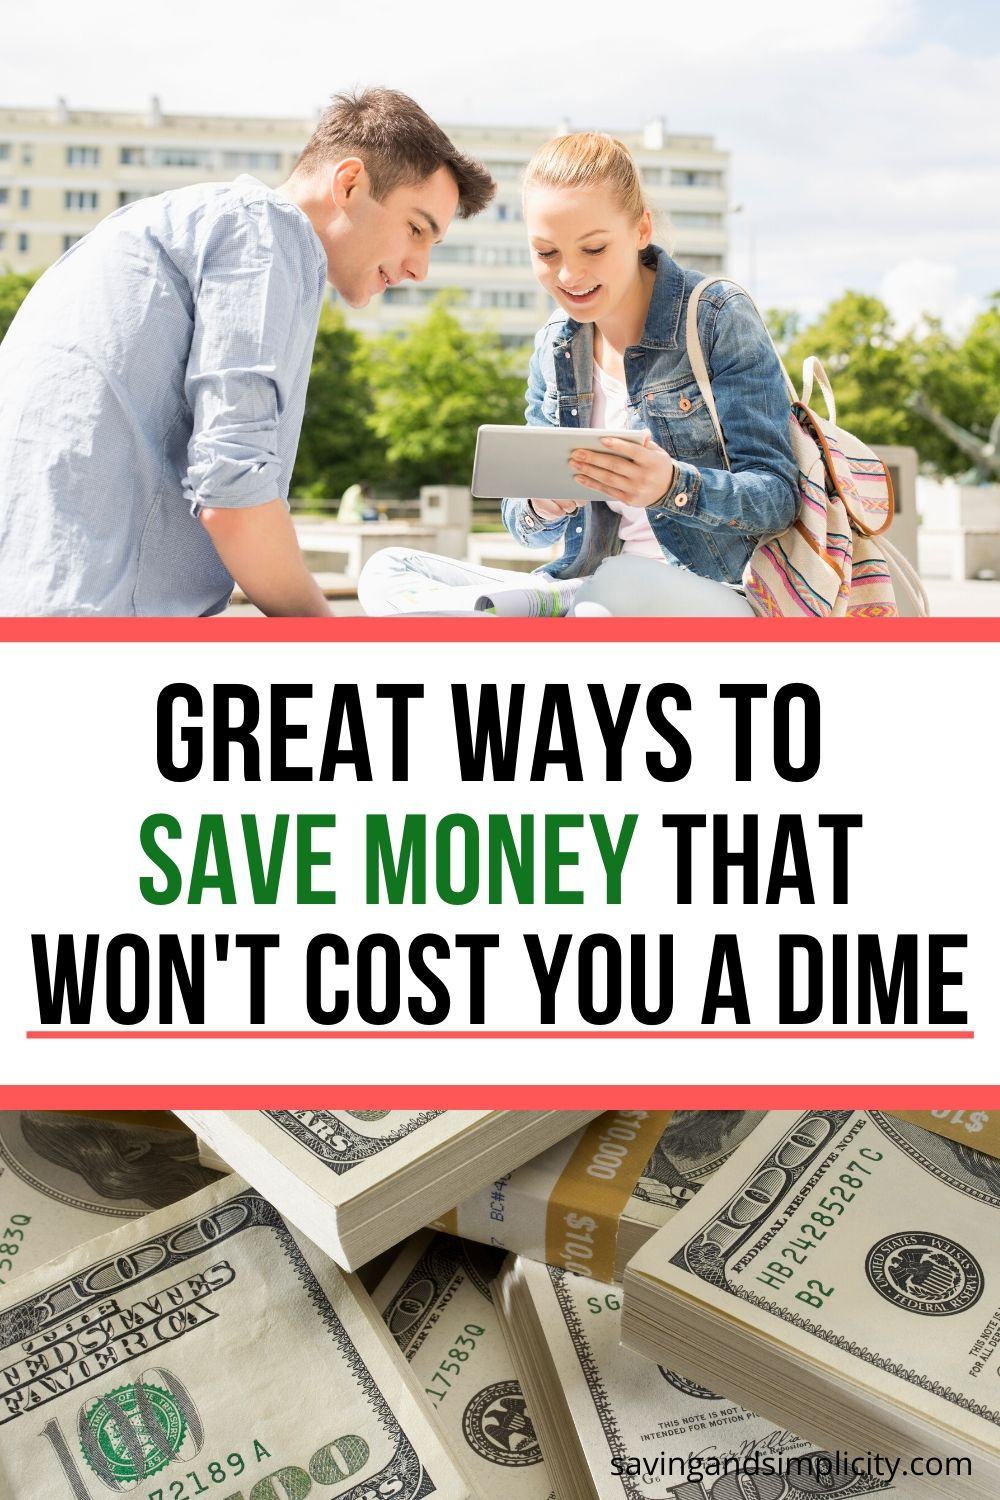 Simple tips and tricks to help you save your hard earned cash